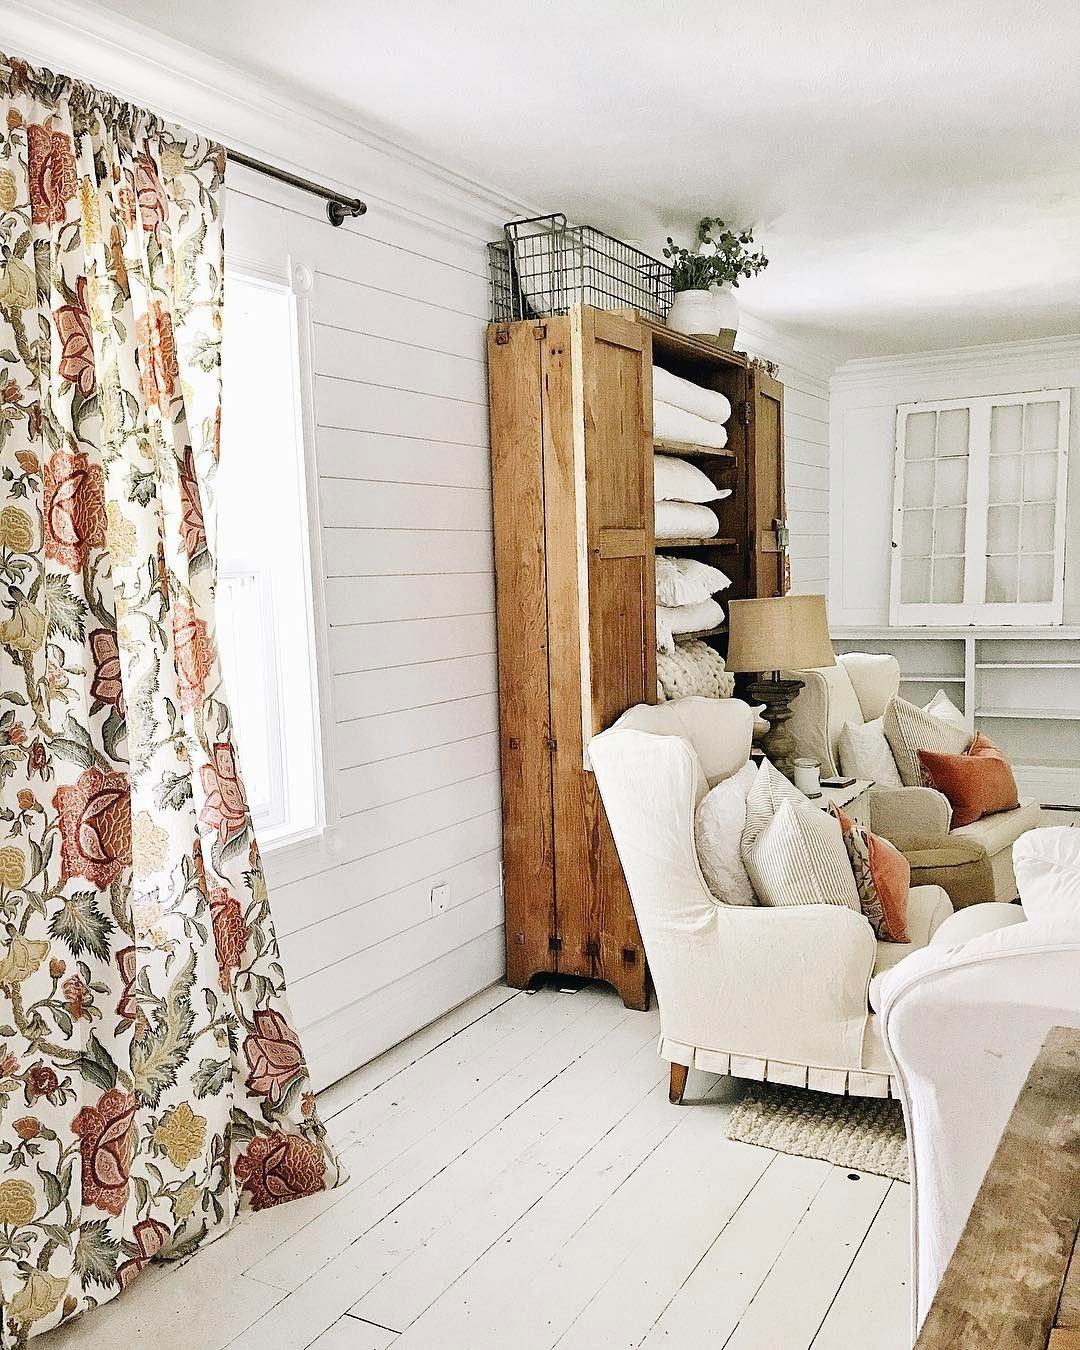 Beautiful farmhouse decor | Interior | Pinterest | Vintage, Living ...